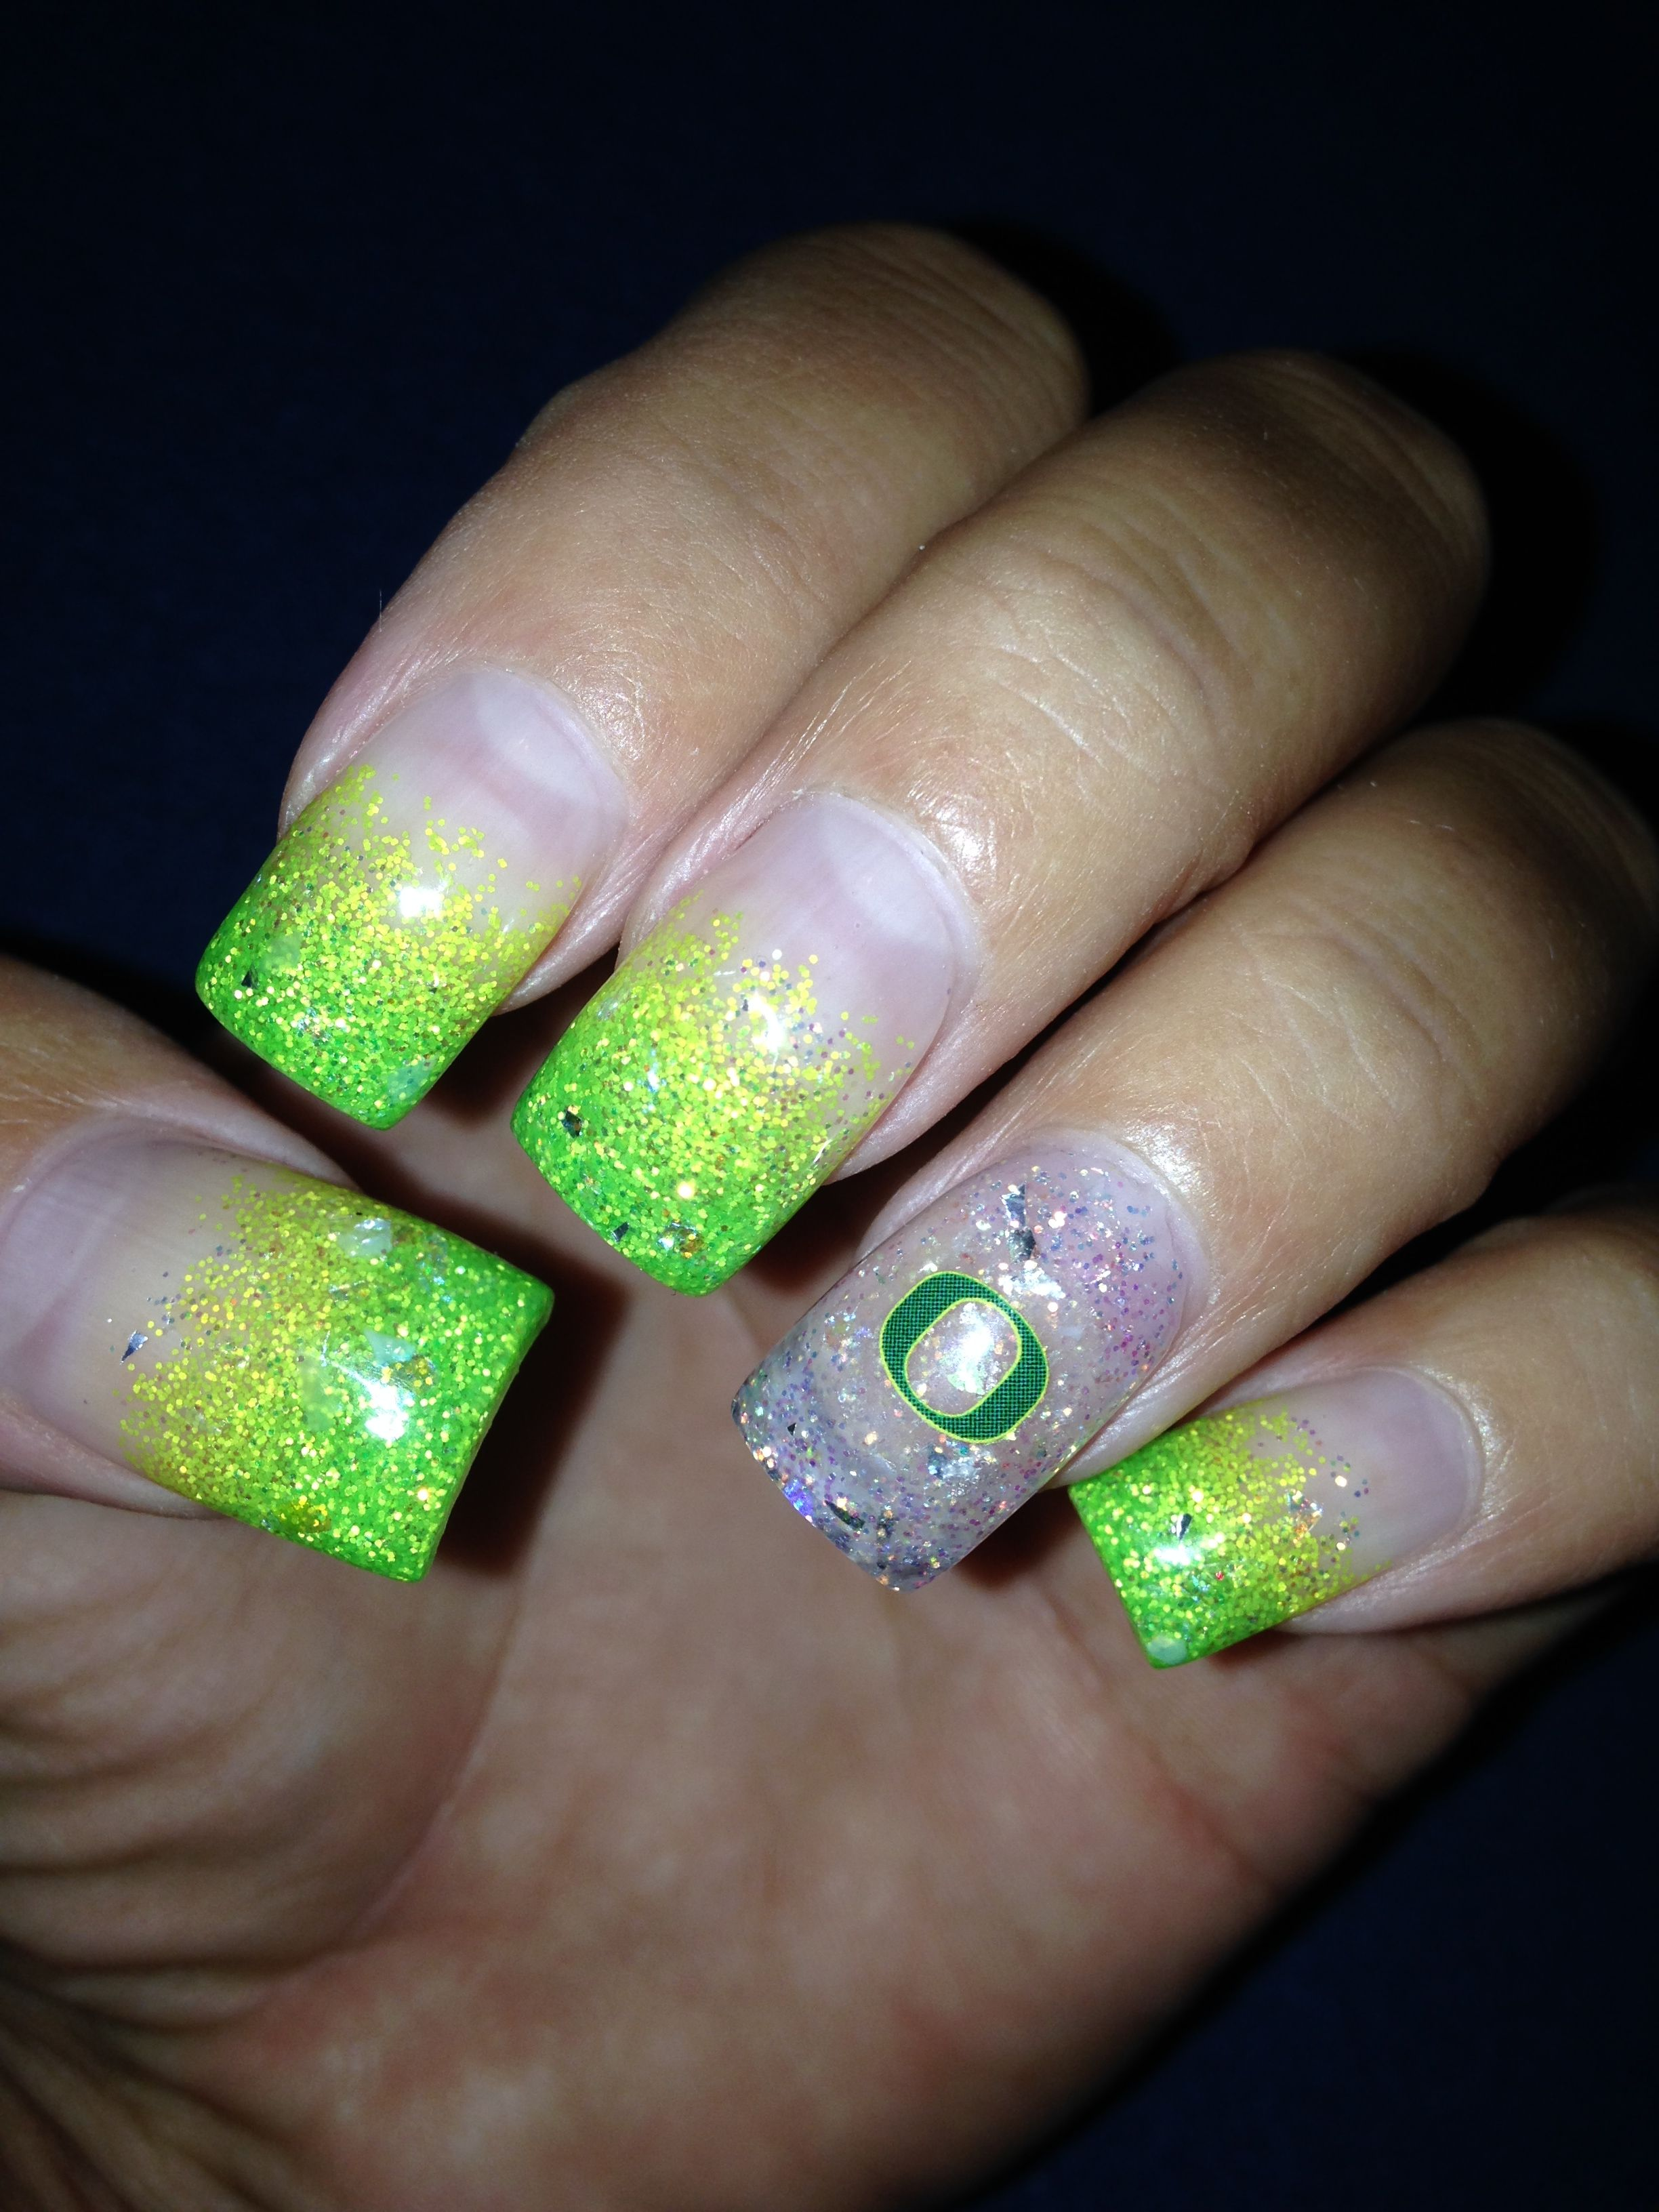 Oregon Duck nails. | Nails by eLIZabeth | Pinterest